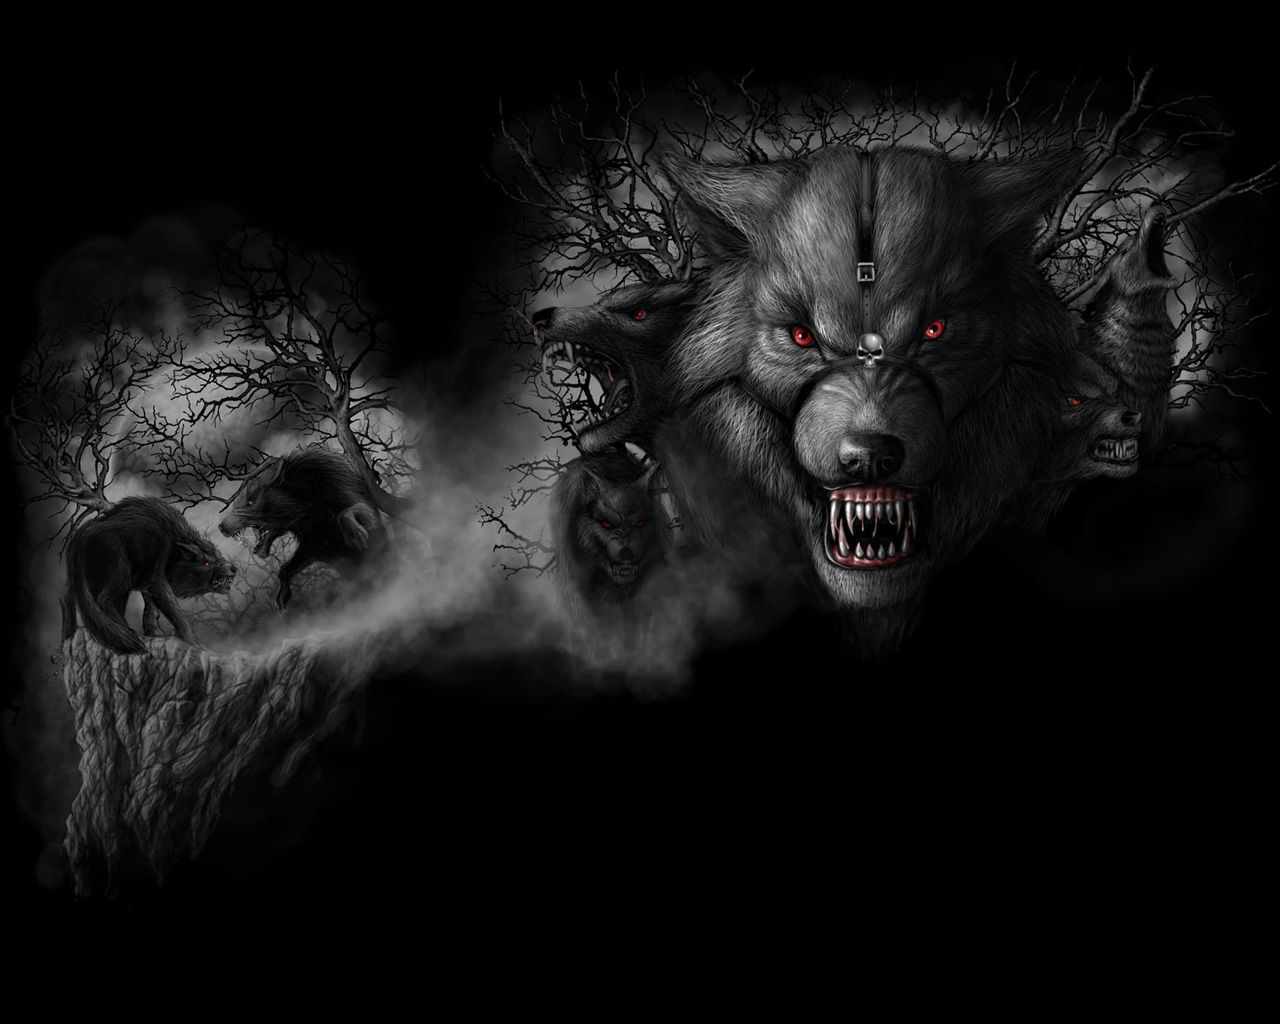 Black and White Angry WereWolfs with red Eyes | Black | Pinterest ... for Angry Wolf Black And White  75tgx